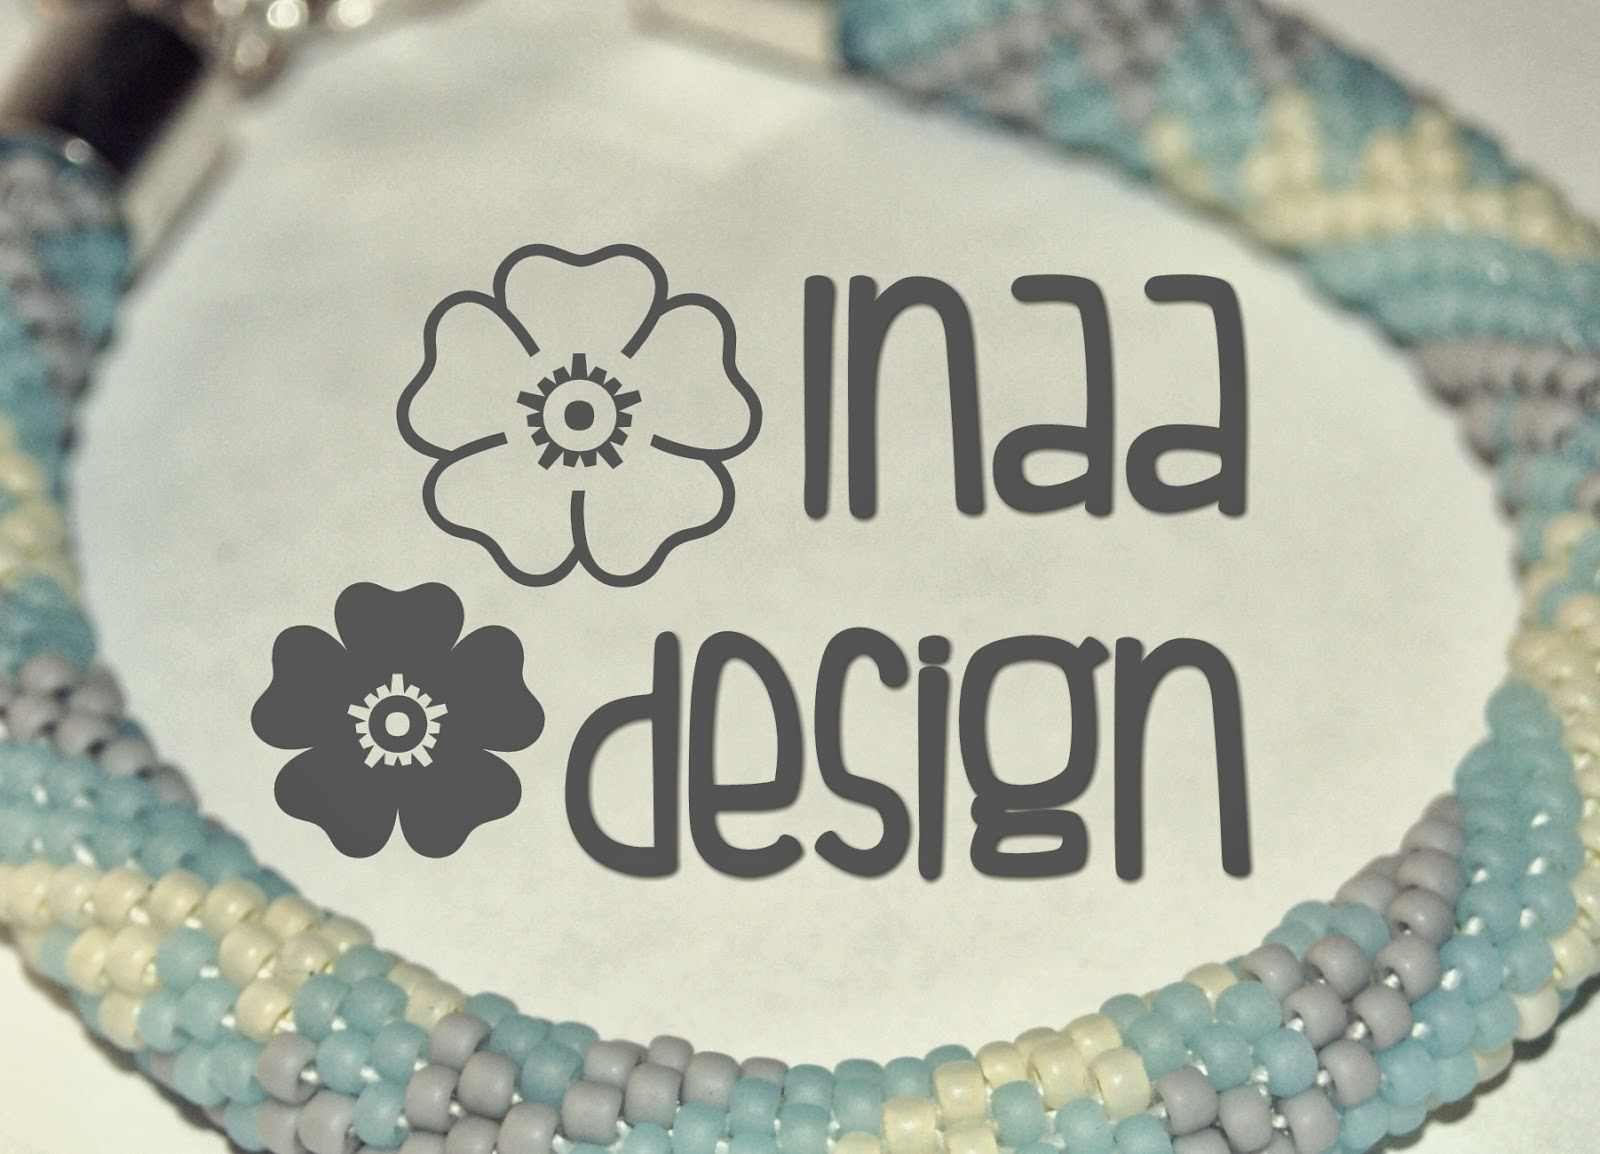 https://www.facebook.com/inaadesigninaadesign